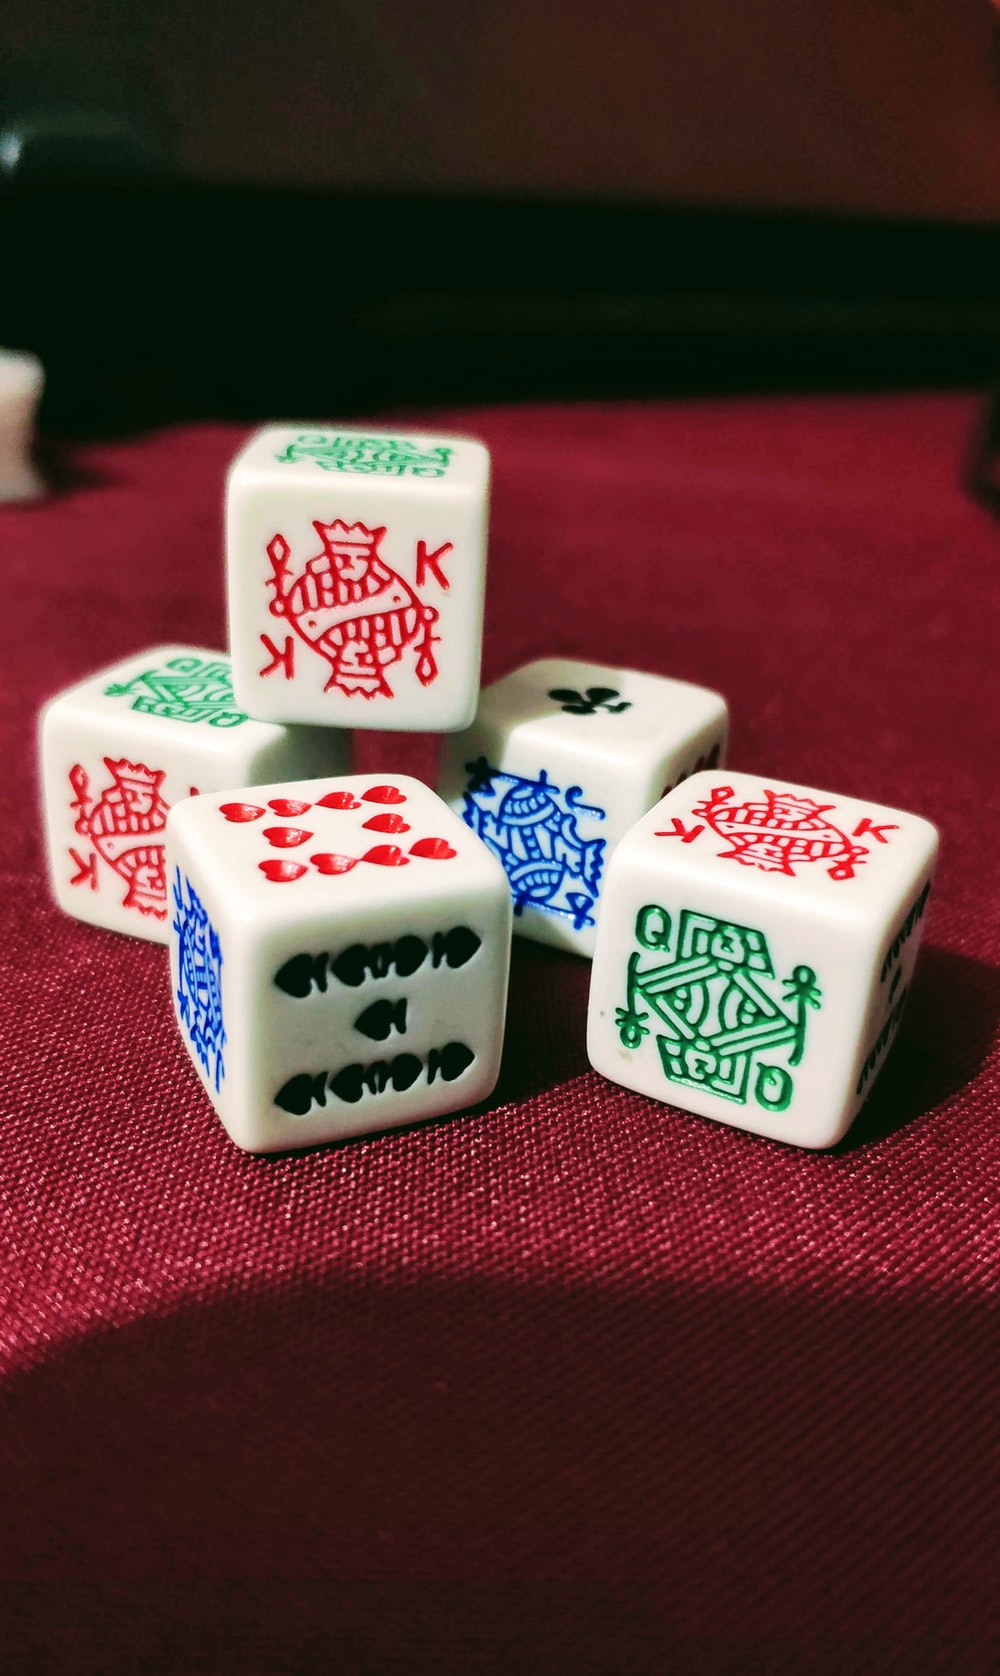 five playing dies on red cloth